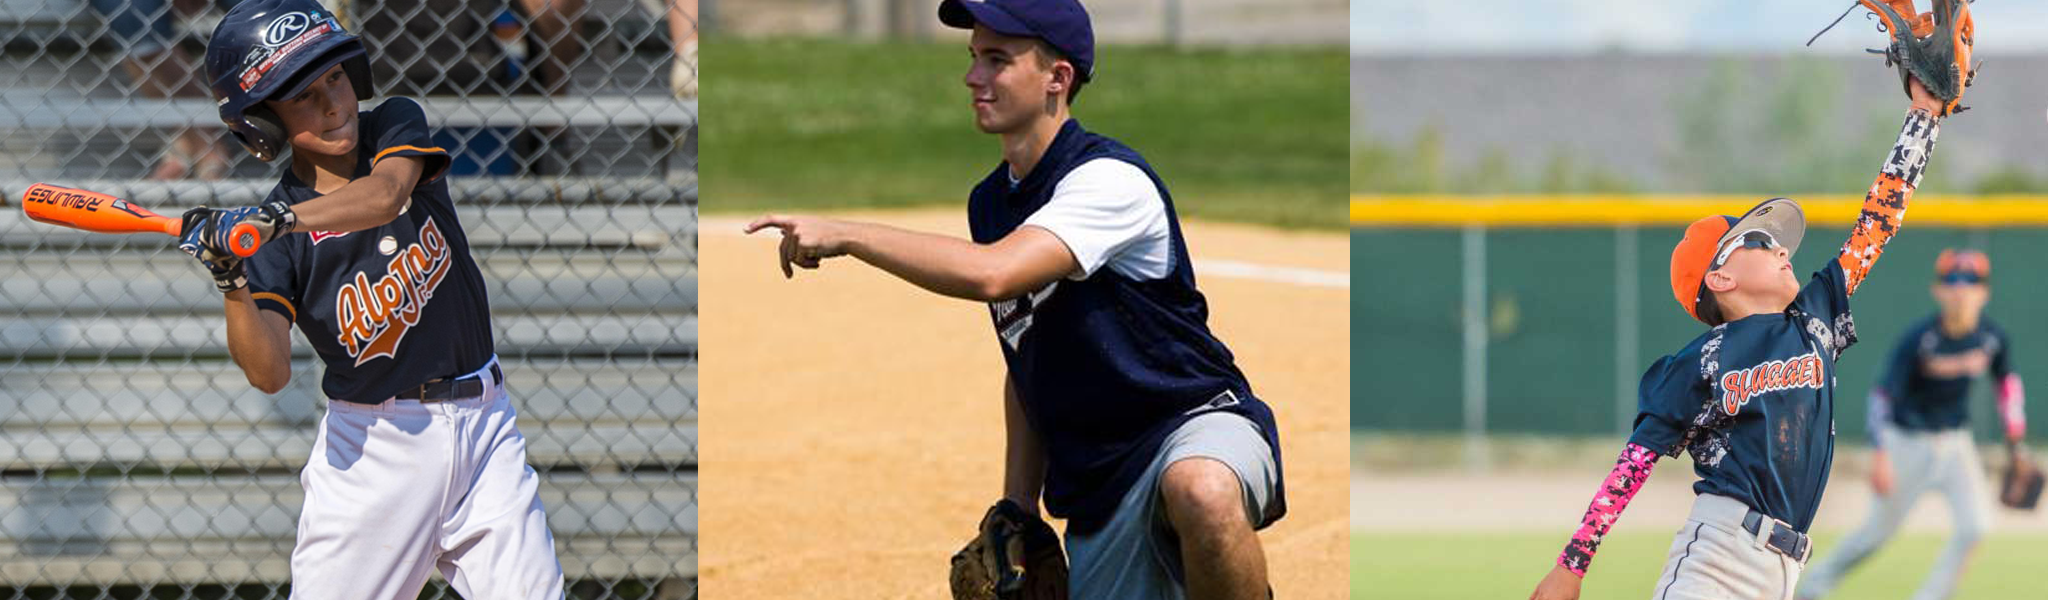 Softball and Baseball clinics - Bobby Woods Baseball New Jersey